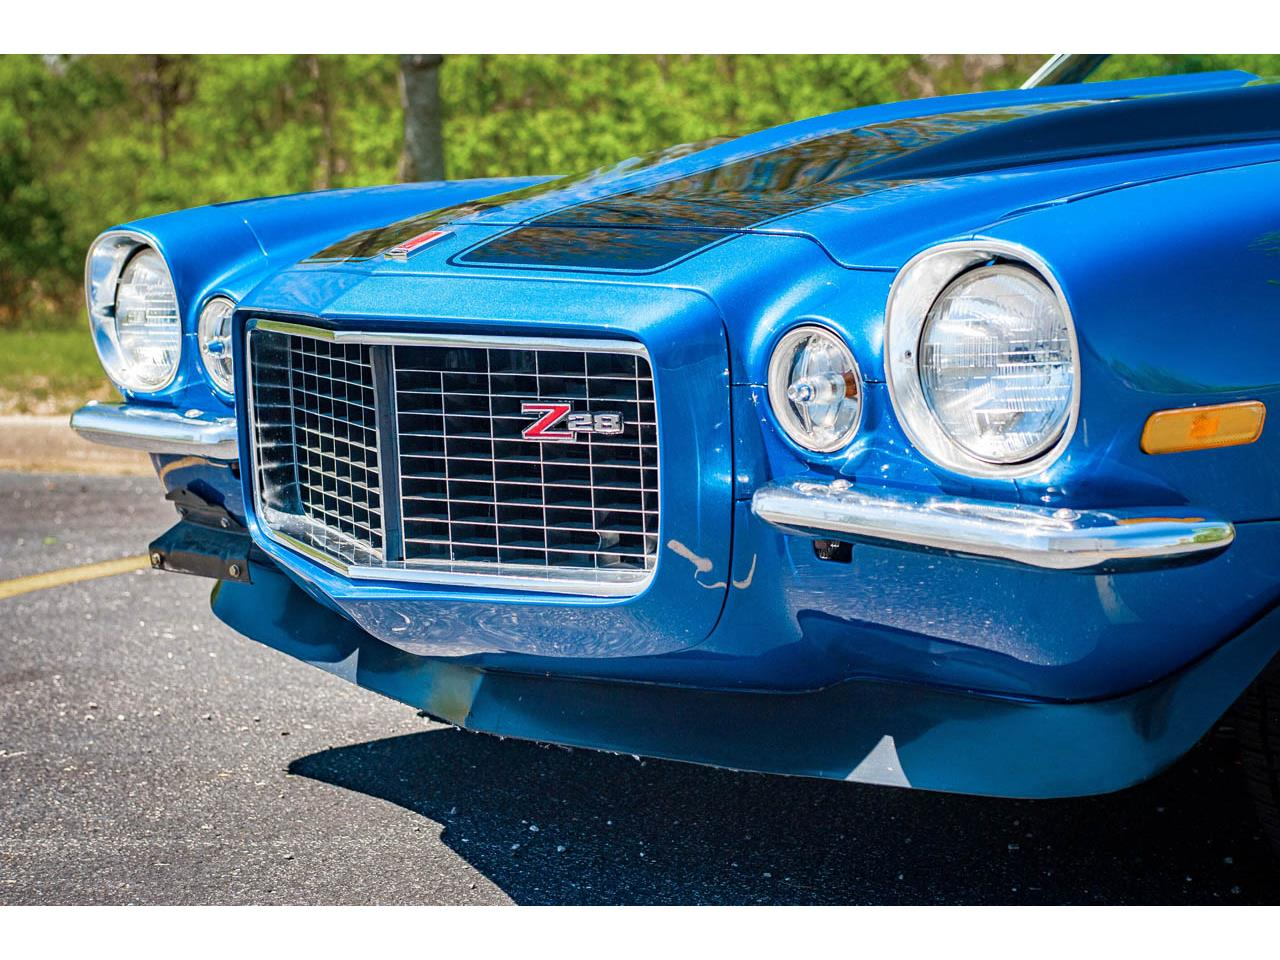 Large Picture of Classic '71 Camaro located in O'Fallon Illinois - $35,995.00 Offered by Gateway Classic Cars - St. Louis - QB8S